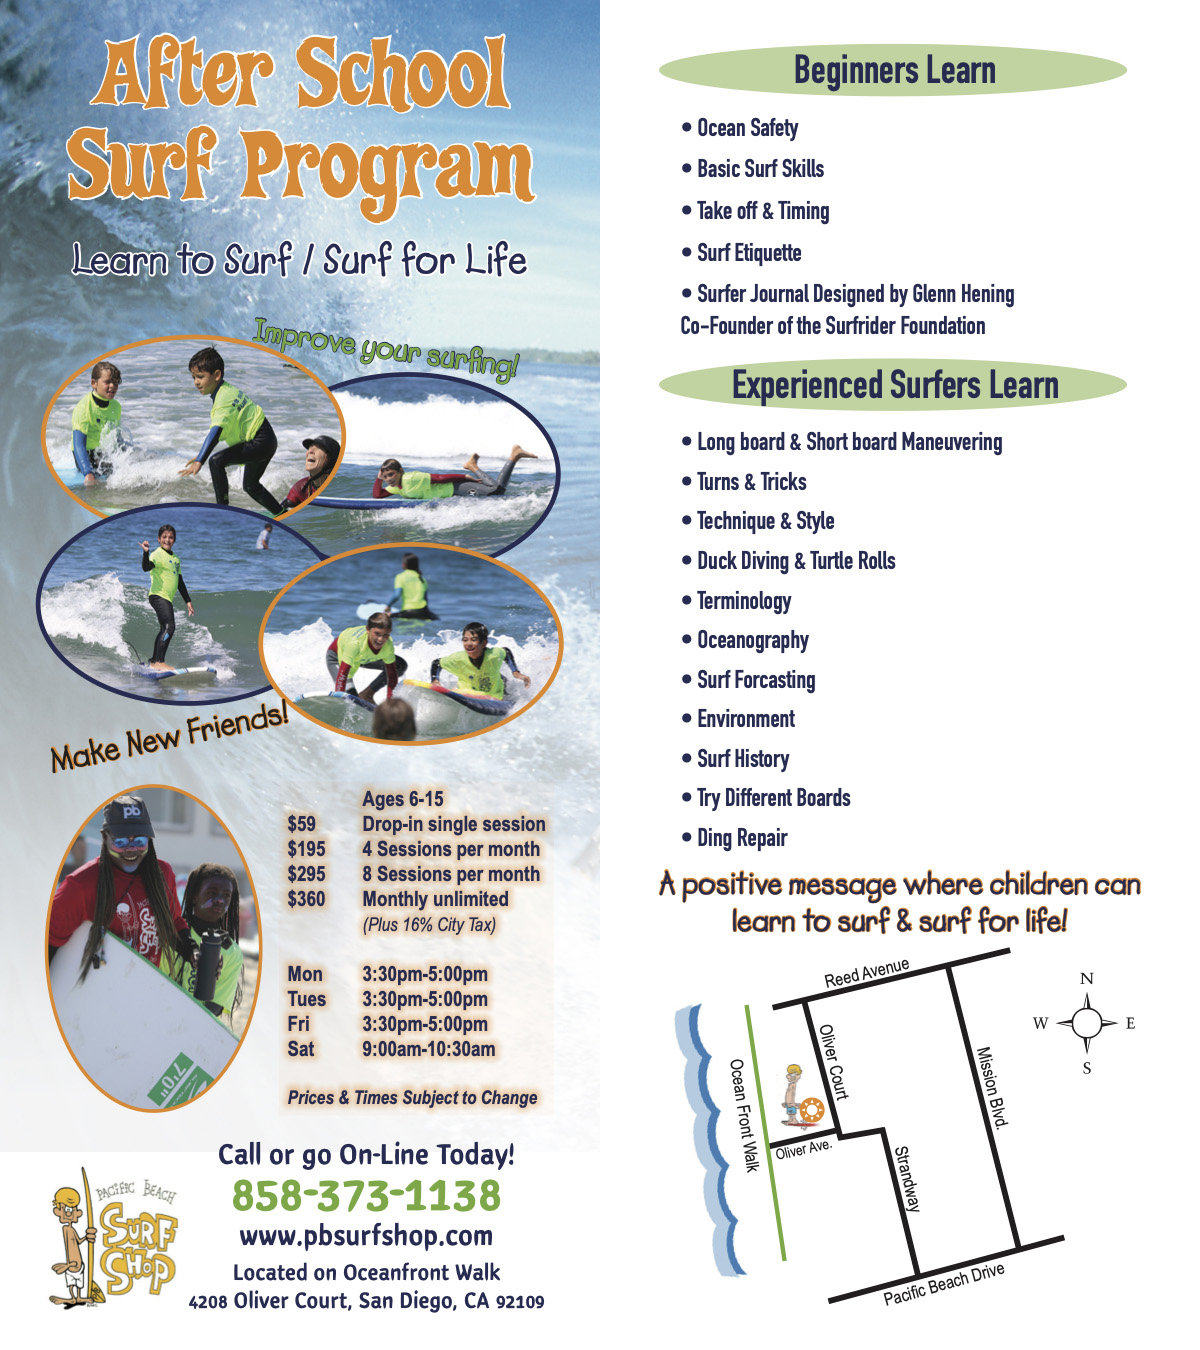 surfing lessons in san diego, san diego surfing, surfing san diego, surfing in san diego, san diego surfing lessons, surf lesson san diego, san diego surf lessons, girls surf, surf lessons in san diego, surf lessons san diego, surfing school, surfer girls, surf schools, surf lessons, rent surfboards, surf school, san diego surf report, learn to surf san diego, surf rentals, surf camp san diego, surfboard rental, surfing camps, san diego surf, best surf lessons san diego, surf lesson california, types of surfboards, surf report san diego, surf class, surf classes, california surf school, california surf camp, overnight surf camps, learn how to surf, california surf camps, california surf lessons, night surf, pacific beach surf shop, overnight surf camp, New Wave Pools, surf mat, pb surf shop, private surf lessons, surf tables, Teen Surf Camp, surf encinitas, family surf camp, la jolla shores surf lessons, southern california surf camps, surf lifestyle, hawaii surf camps